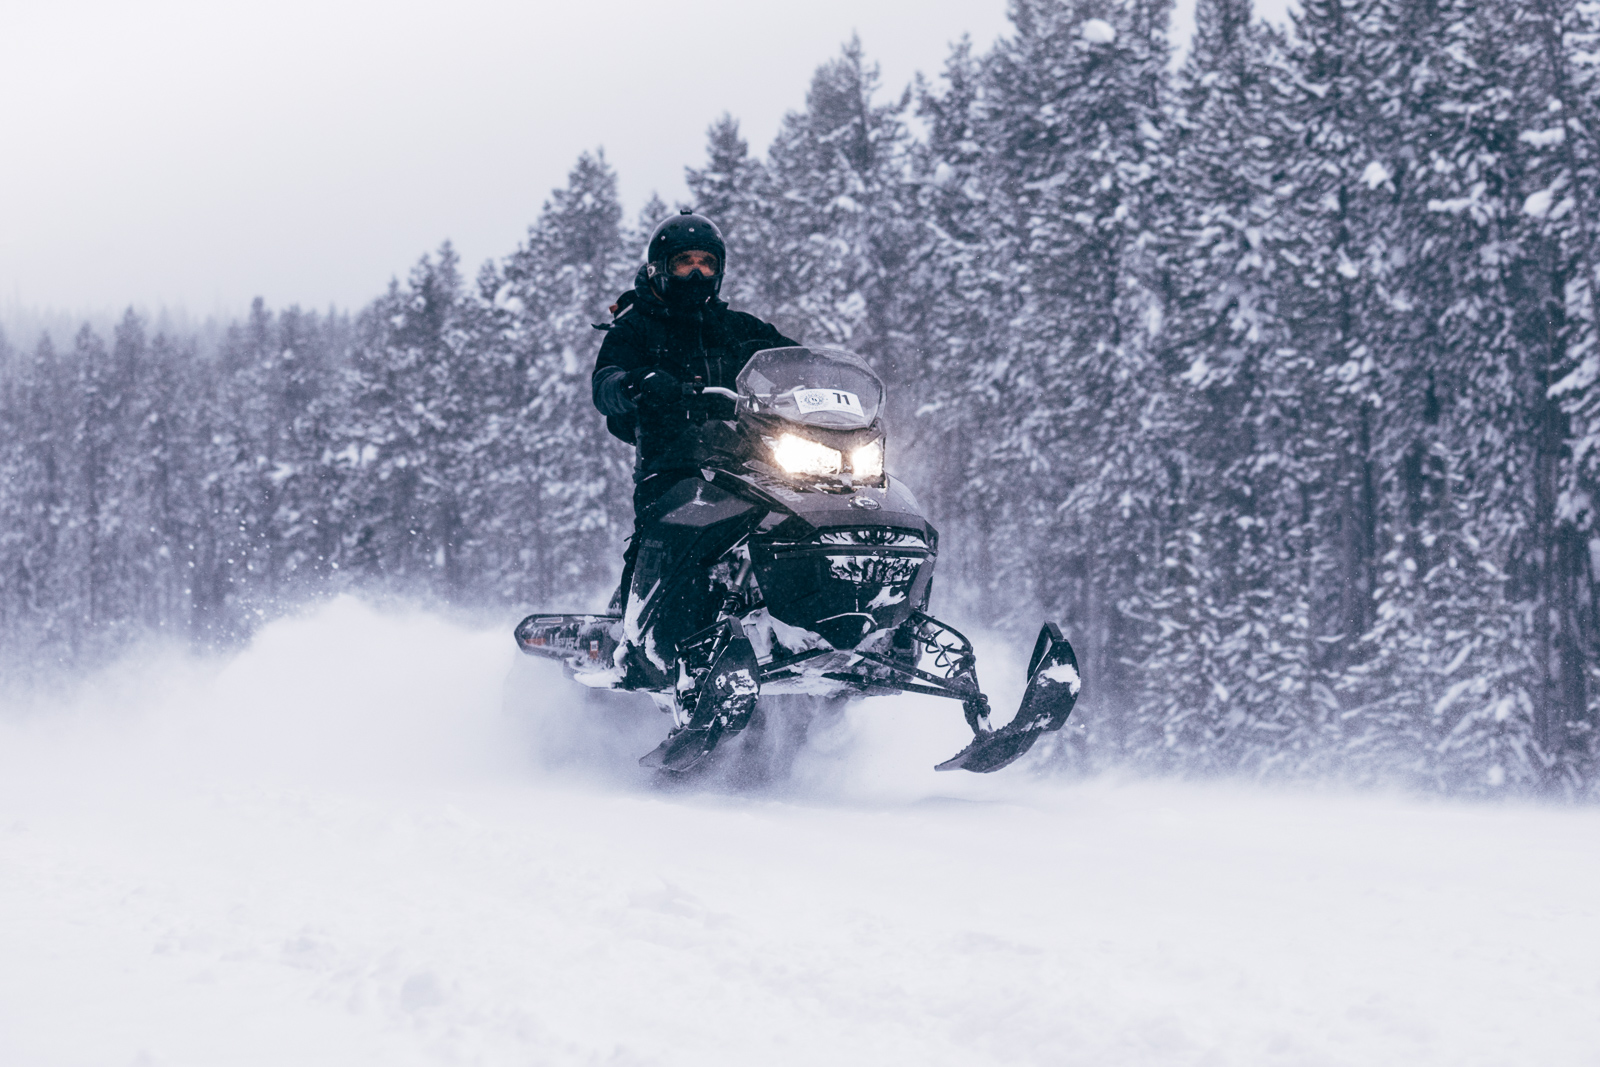 A pair of Ski-Doo Summit 850 Snowmobiles were our tools of choice for multiple feet of fresh powder in the morning and insane blizzard conditions in the afternoon.